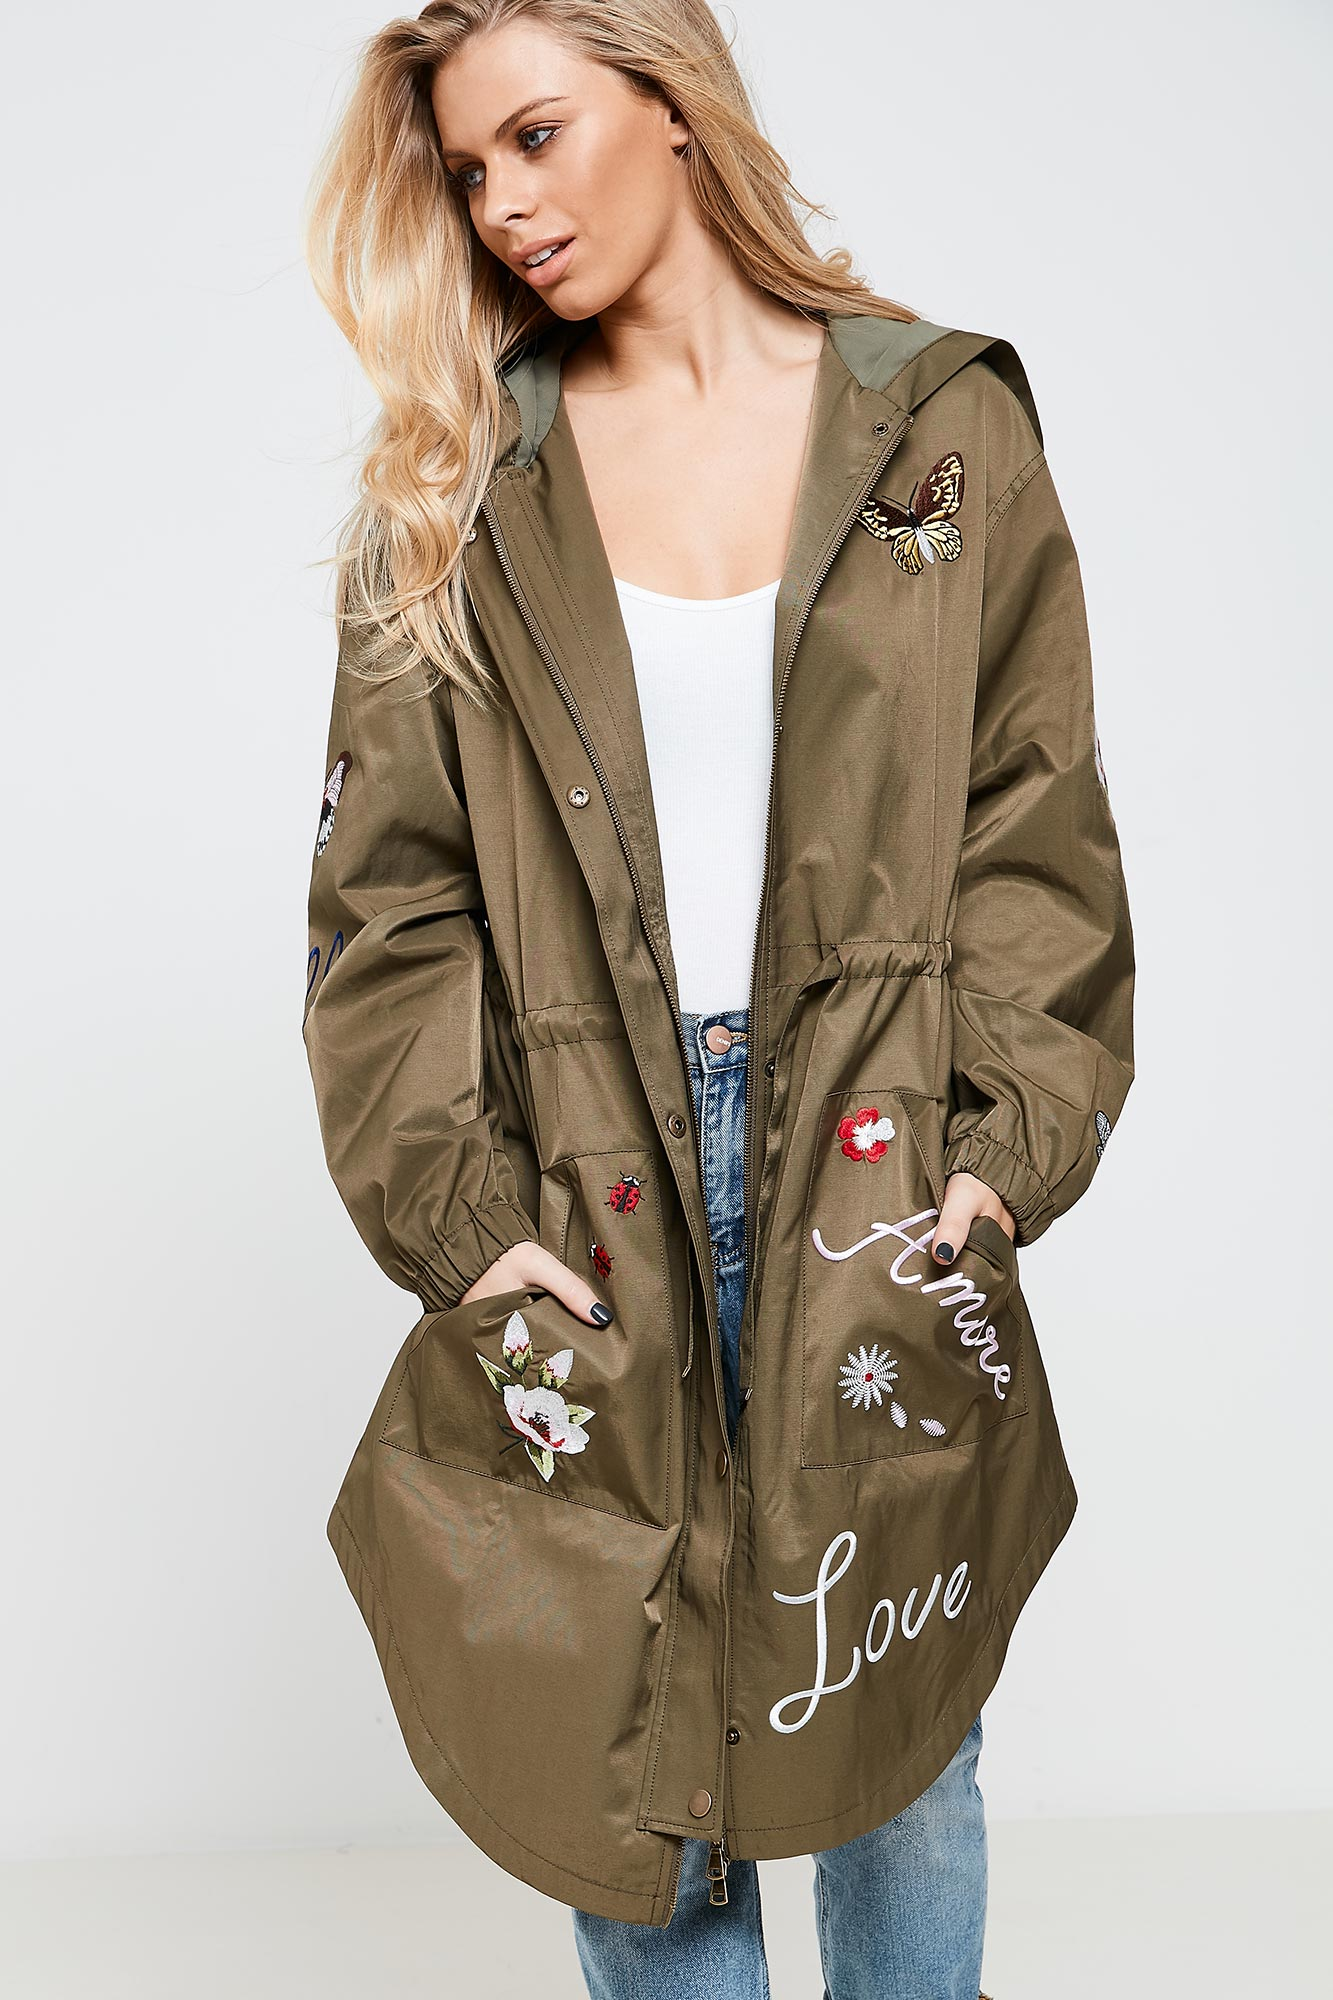 Anita & Green Embroidered Womens Parka Jacket in Khaki with ...